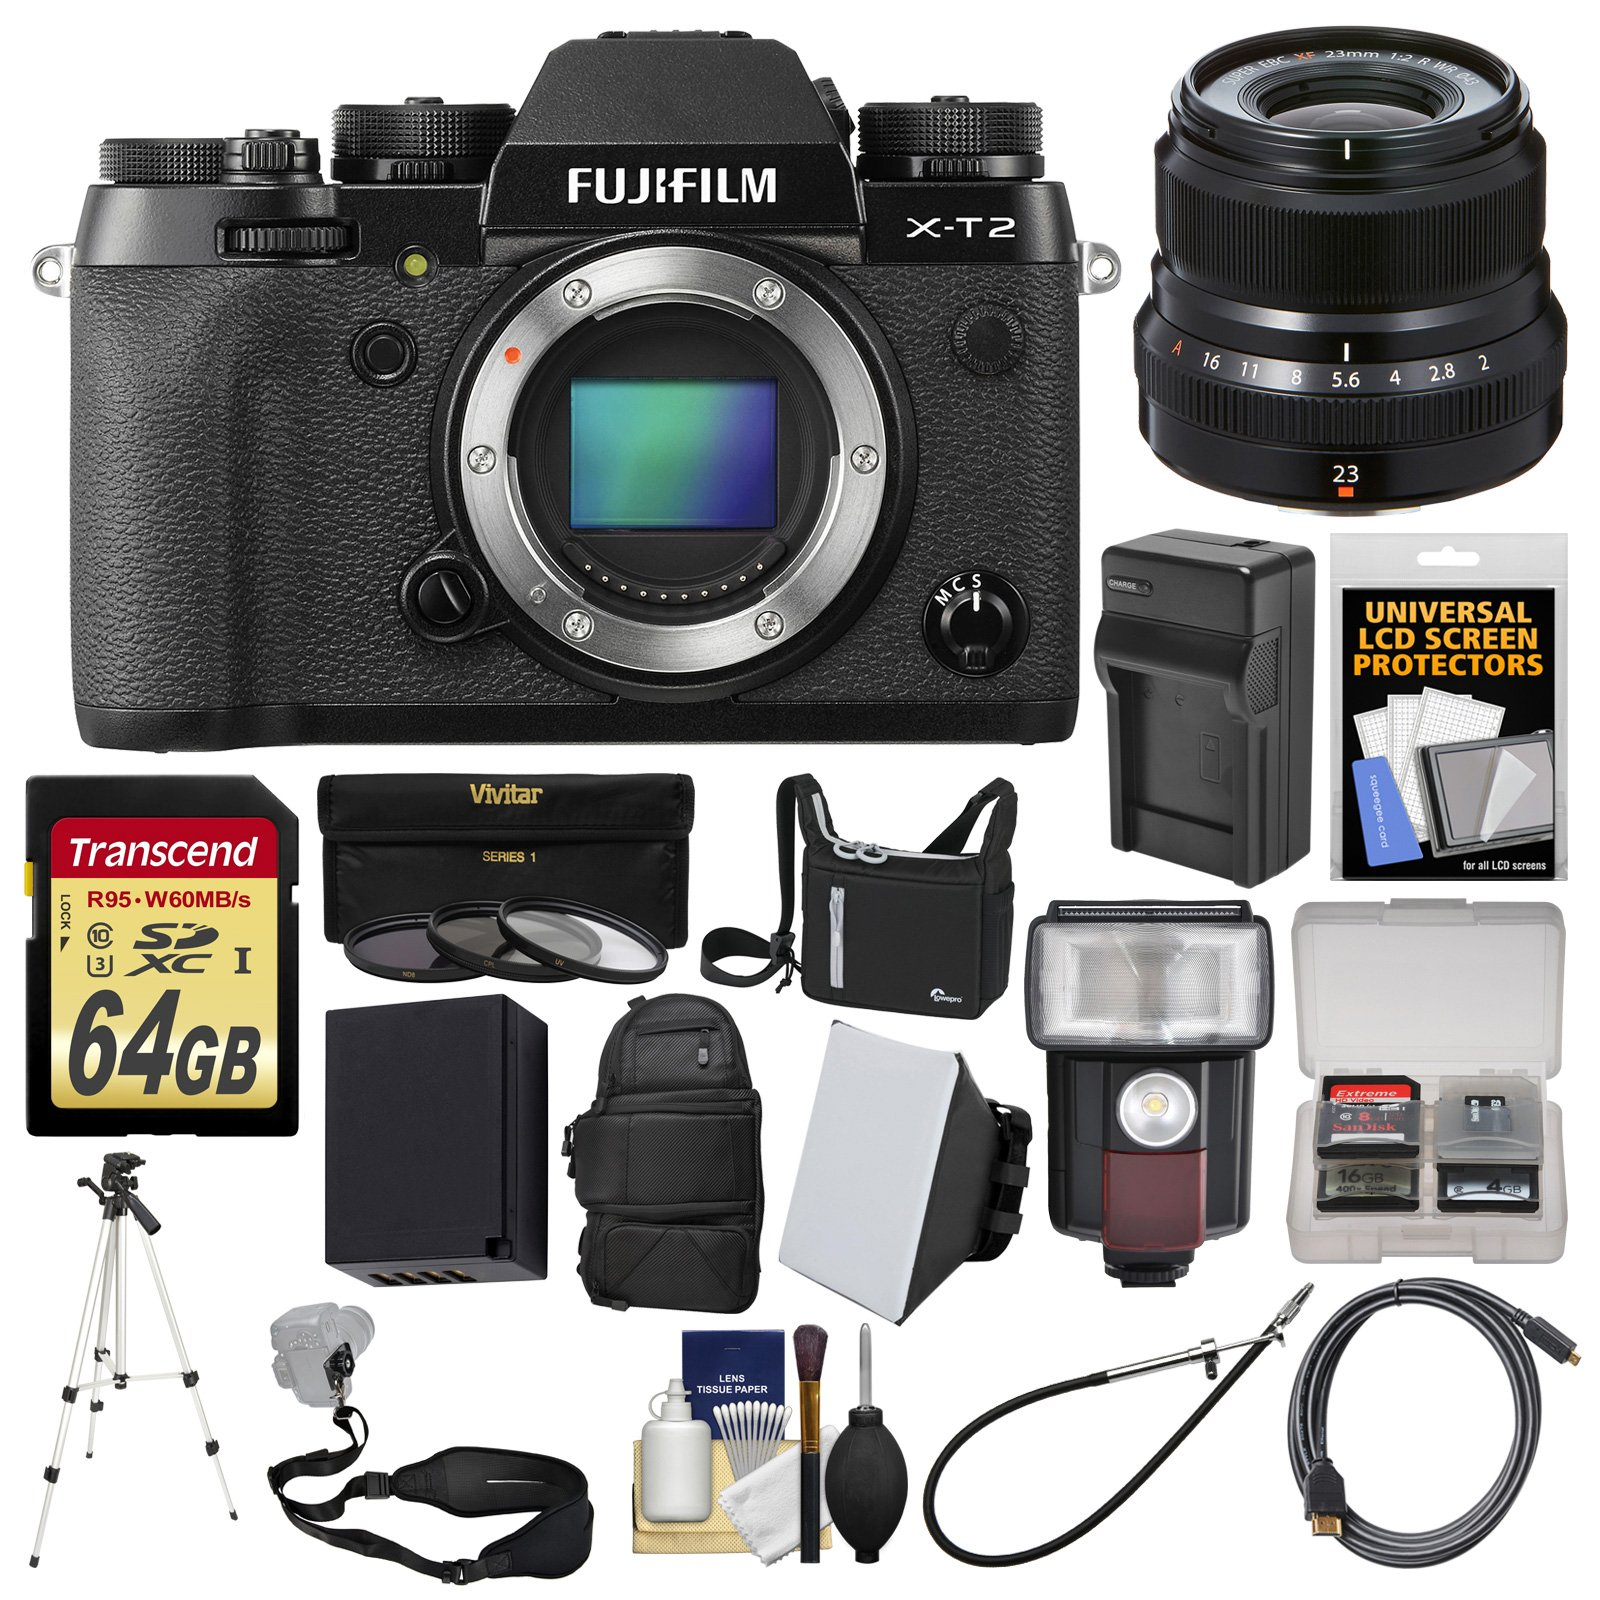 Fujifilm X-T2 4K Wi-Fi Digital Camera Body with 23mm f/2.0 Lens + 64GB Card + Case + Backpack + Flash + Battery + Kit